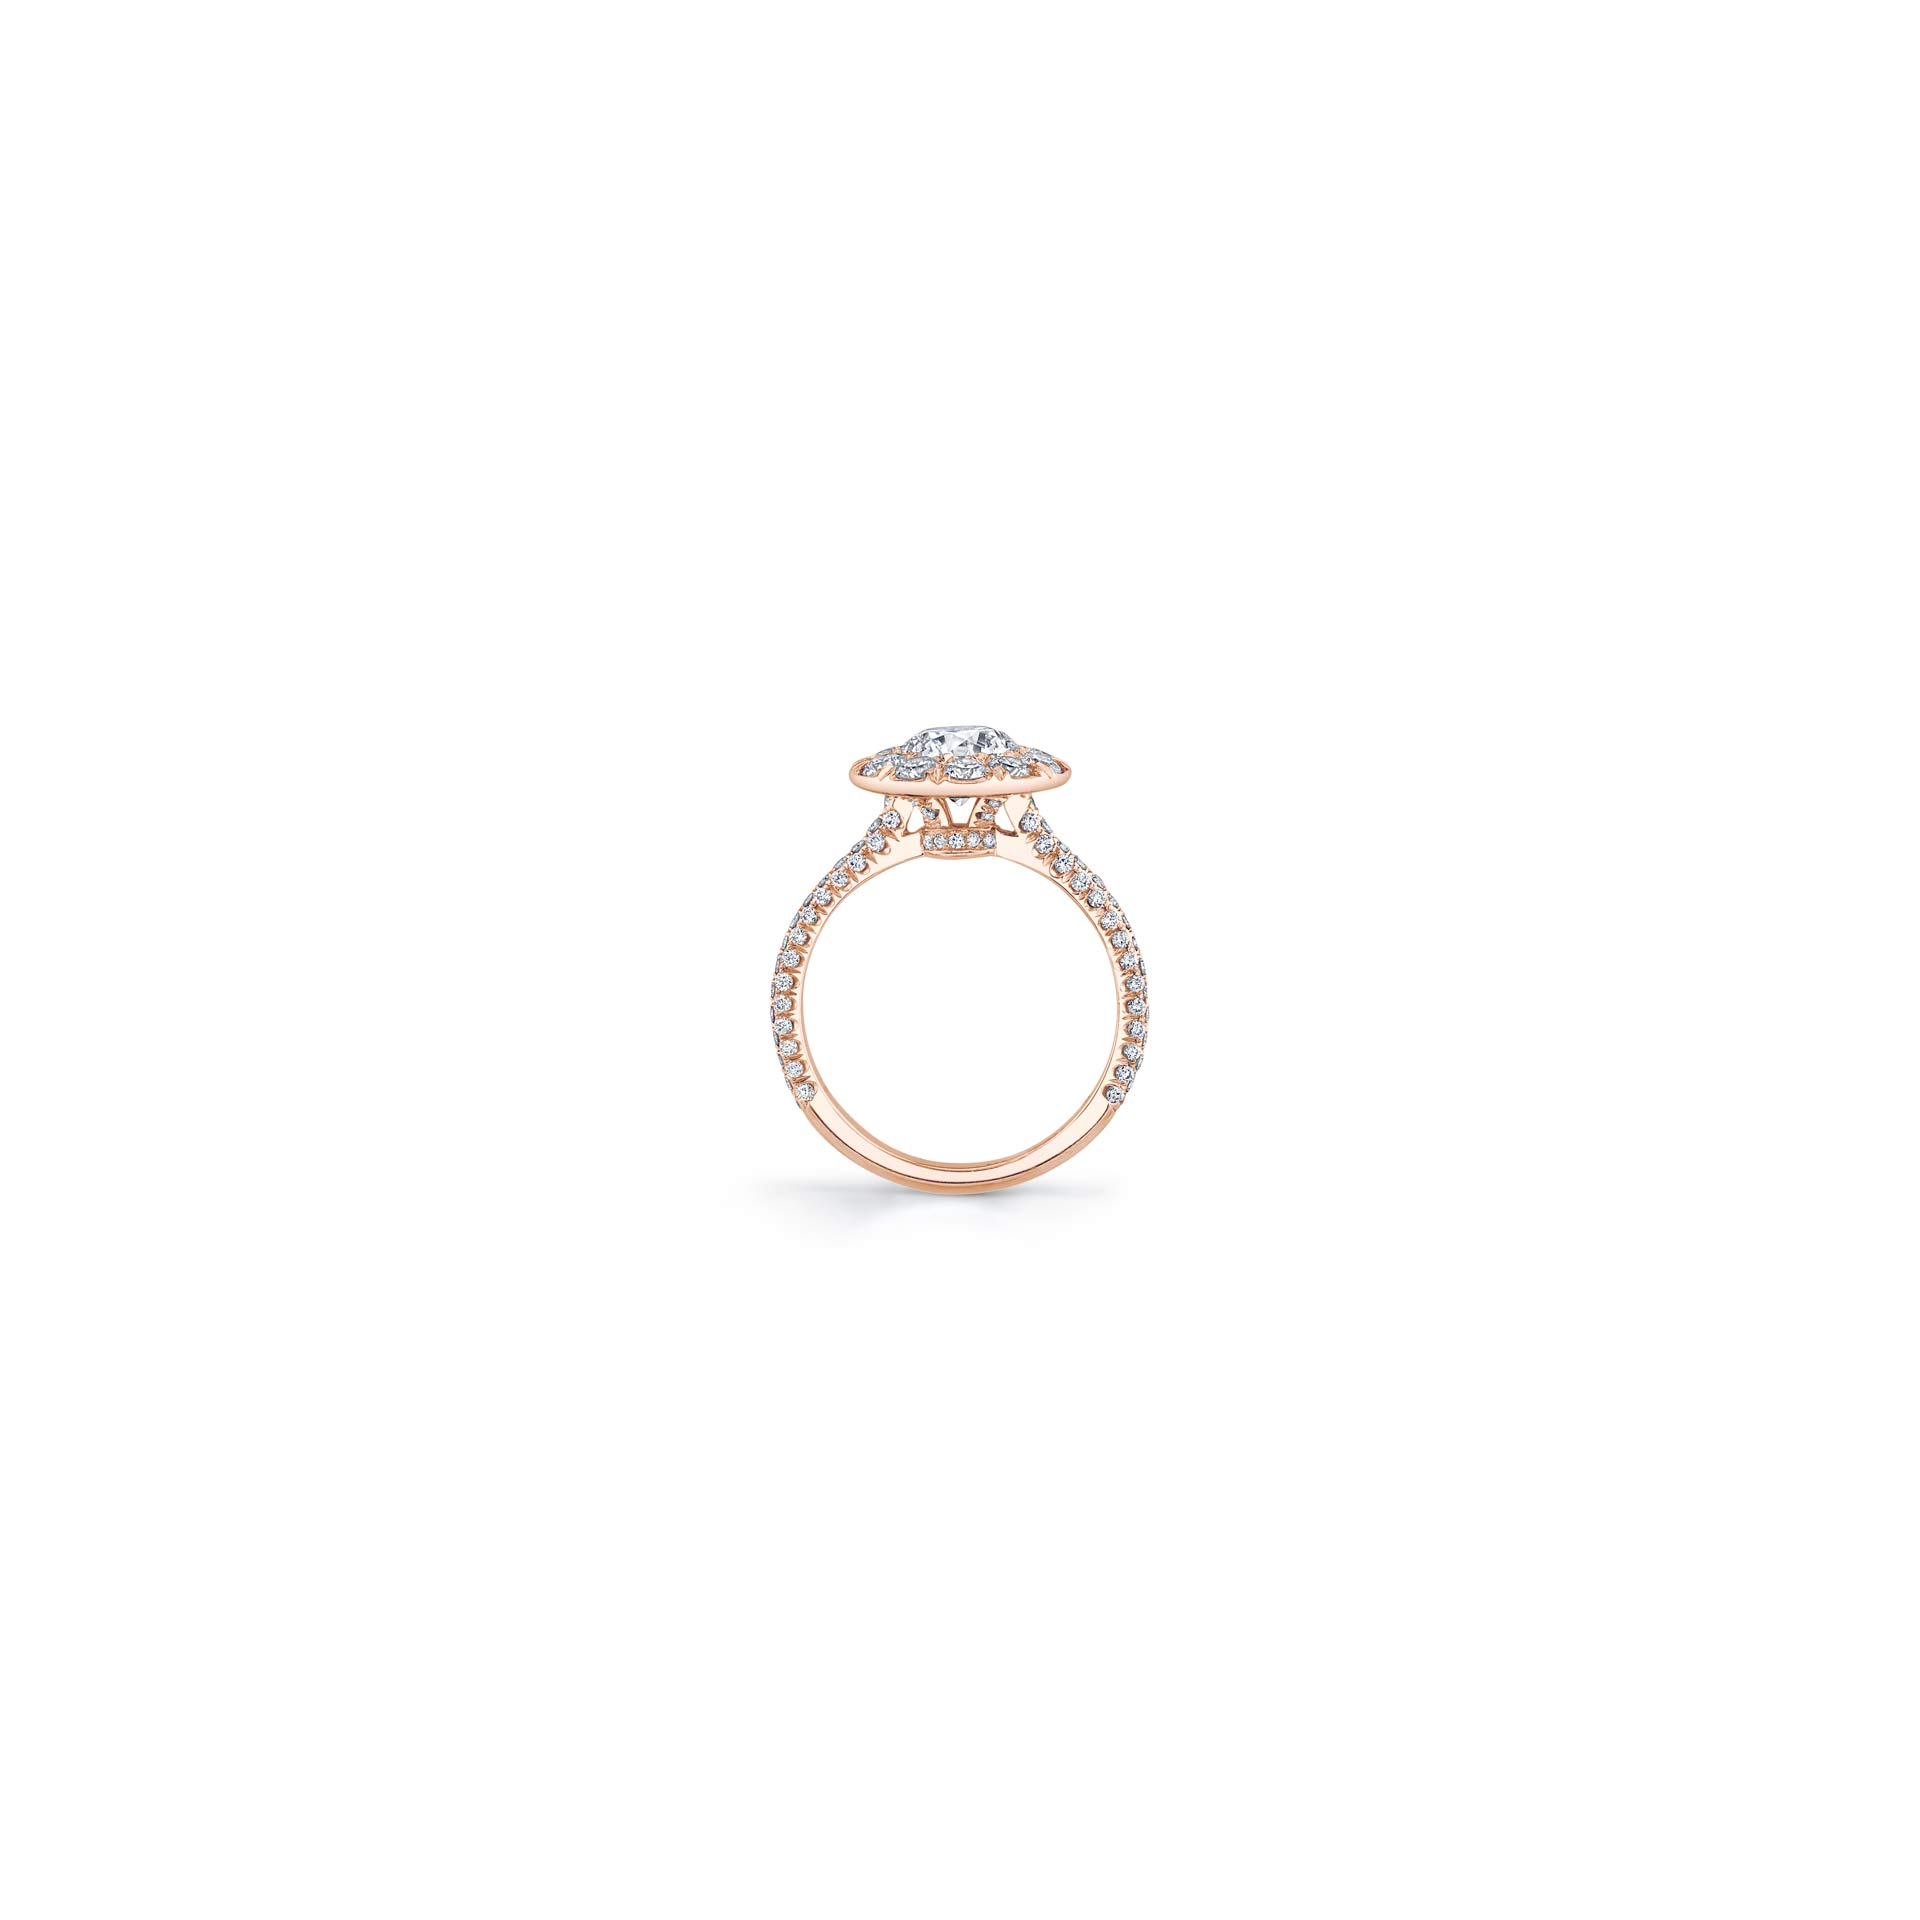 Jacqueline Round Brilliant Seamless Solitaire® Engagement Ring with diamond pavé in 18k Rose Gold Standing View by Oui by Jean Dousset